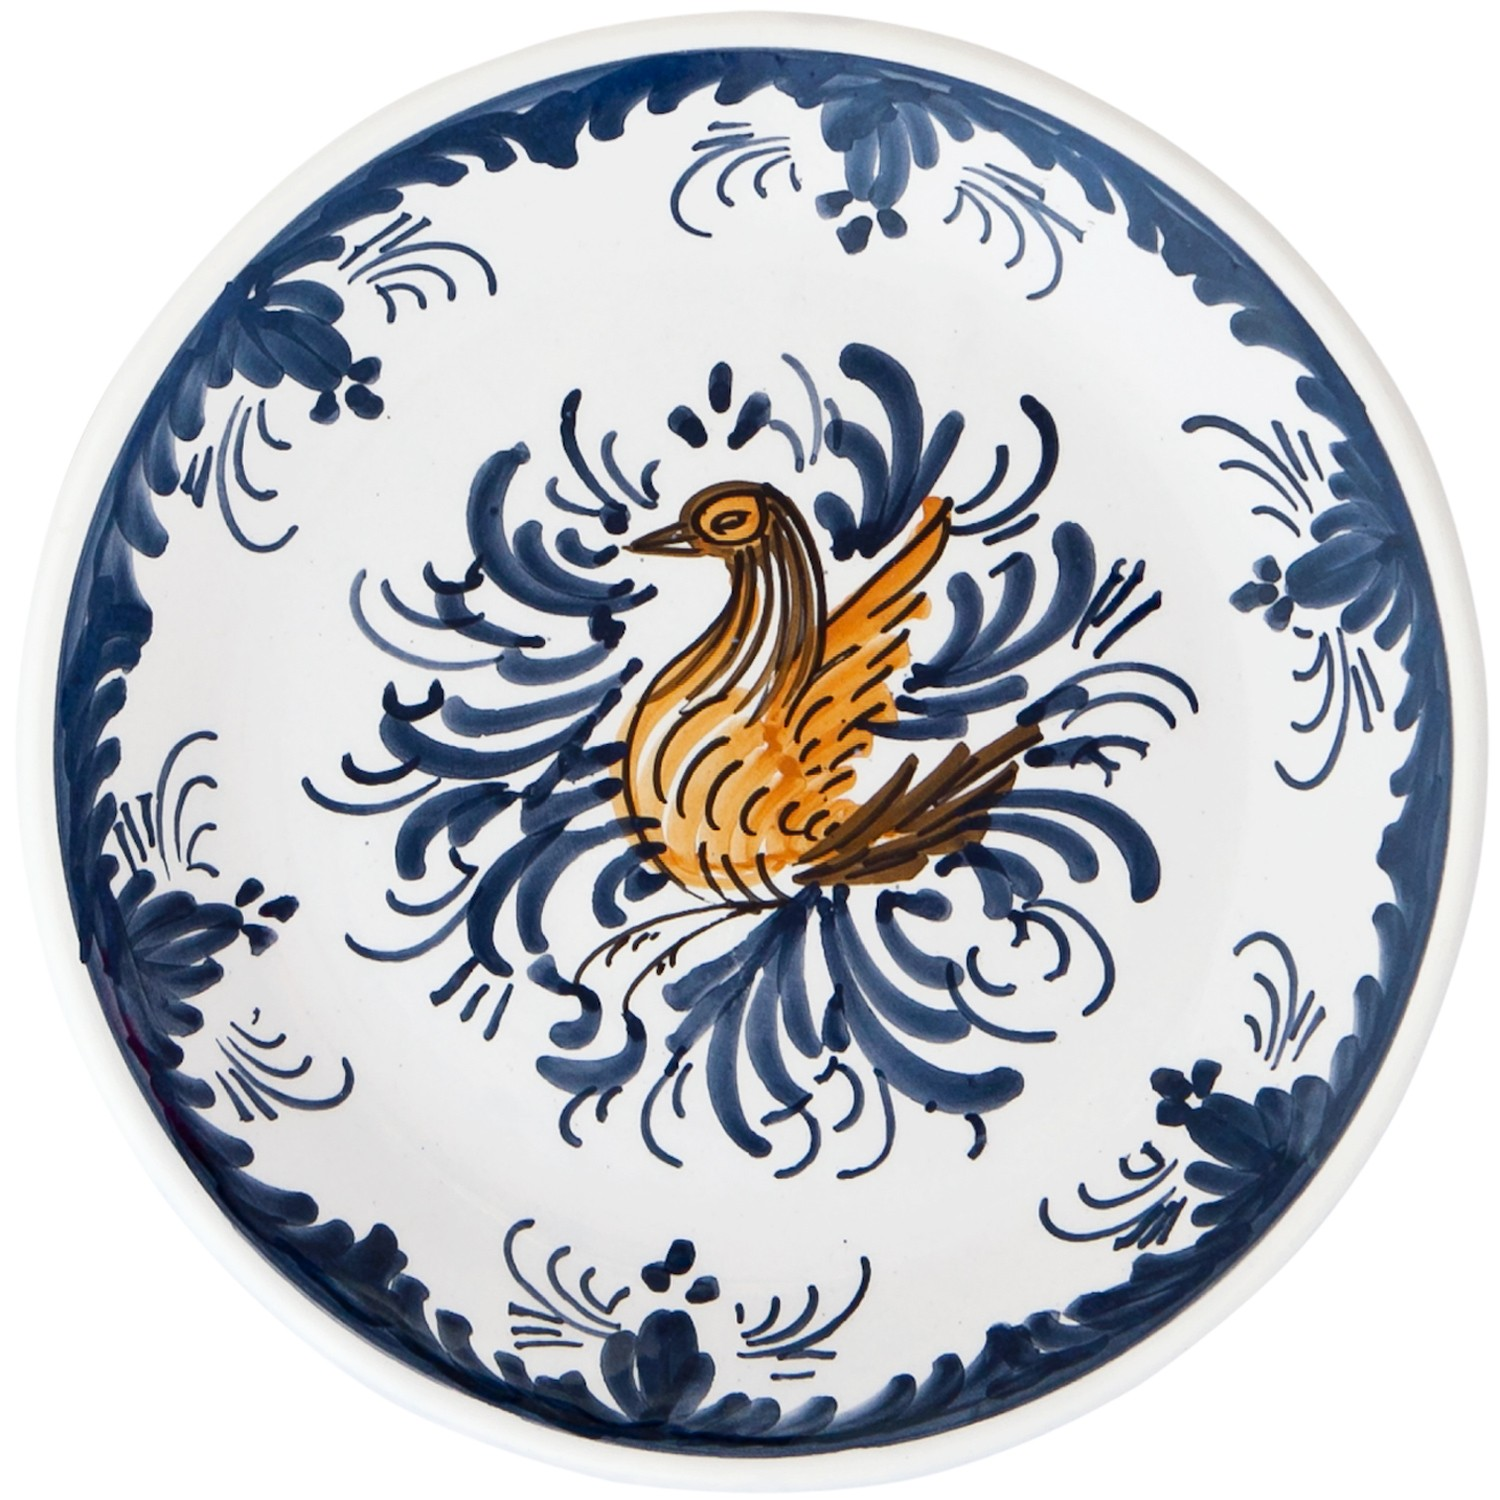 Hand_Painted_Ceramic_Dessert_Decorative_Plate-Swan-Skyriana_Plates-1